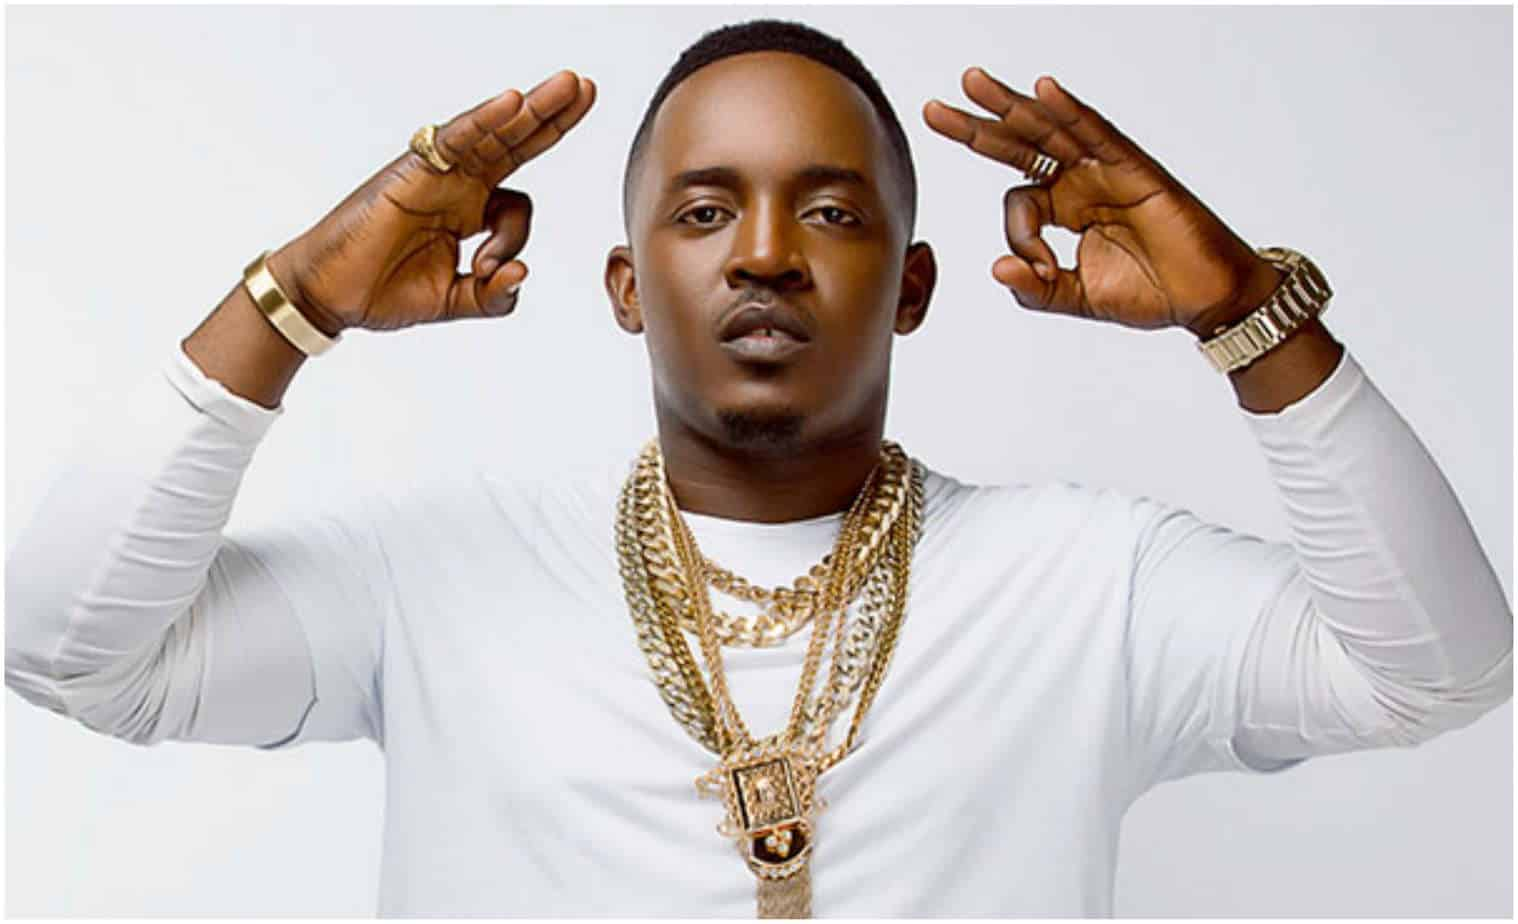 Nigerian rapper, Jude Abaga popularly known as M.I has lent his voice in condemning violence against women in the society. The News Agency of Nigeria reports that social media platforms had been raging with condemnation of violence against women following the death of one Miss Vera Uwaila Omozuwa. Omozuwa, a 22-year-old 100-level student of the […]